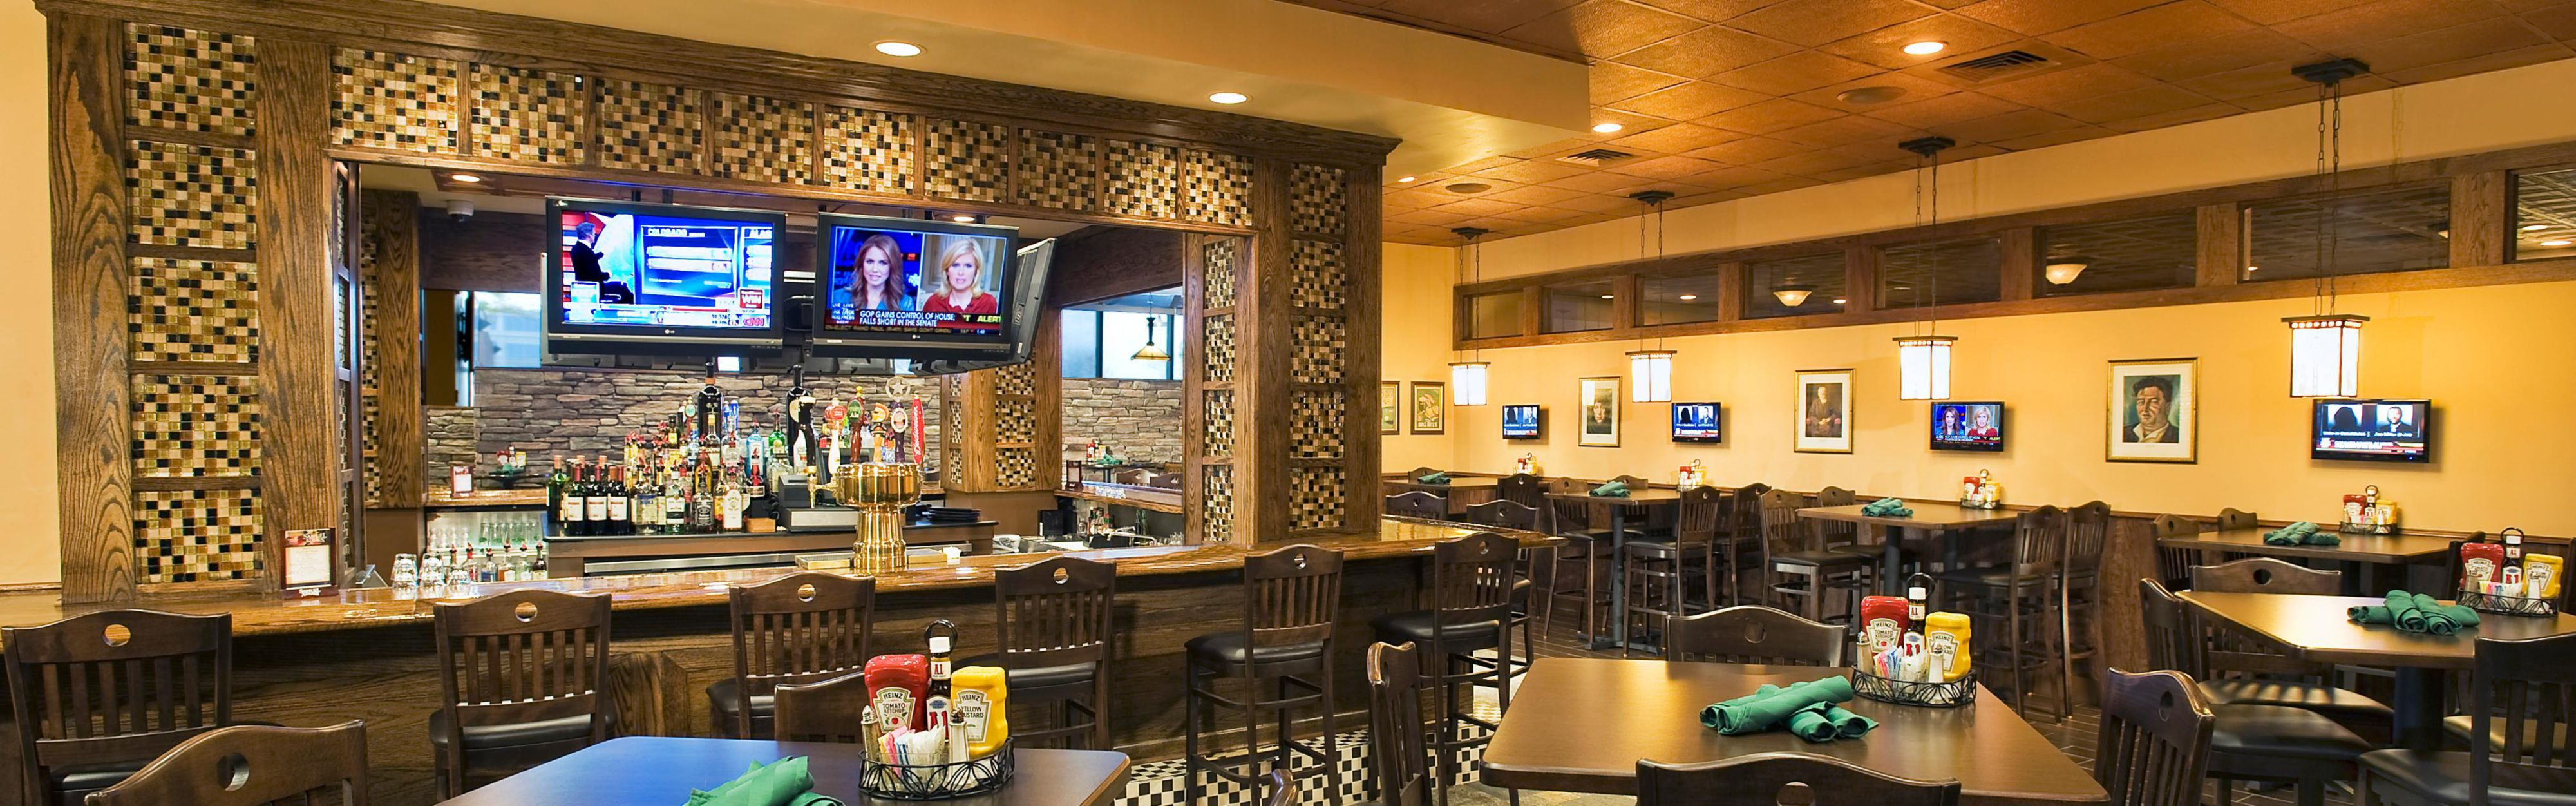 BWI Airport Hotels - Hotels Near Baltimore Airport